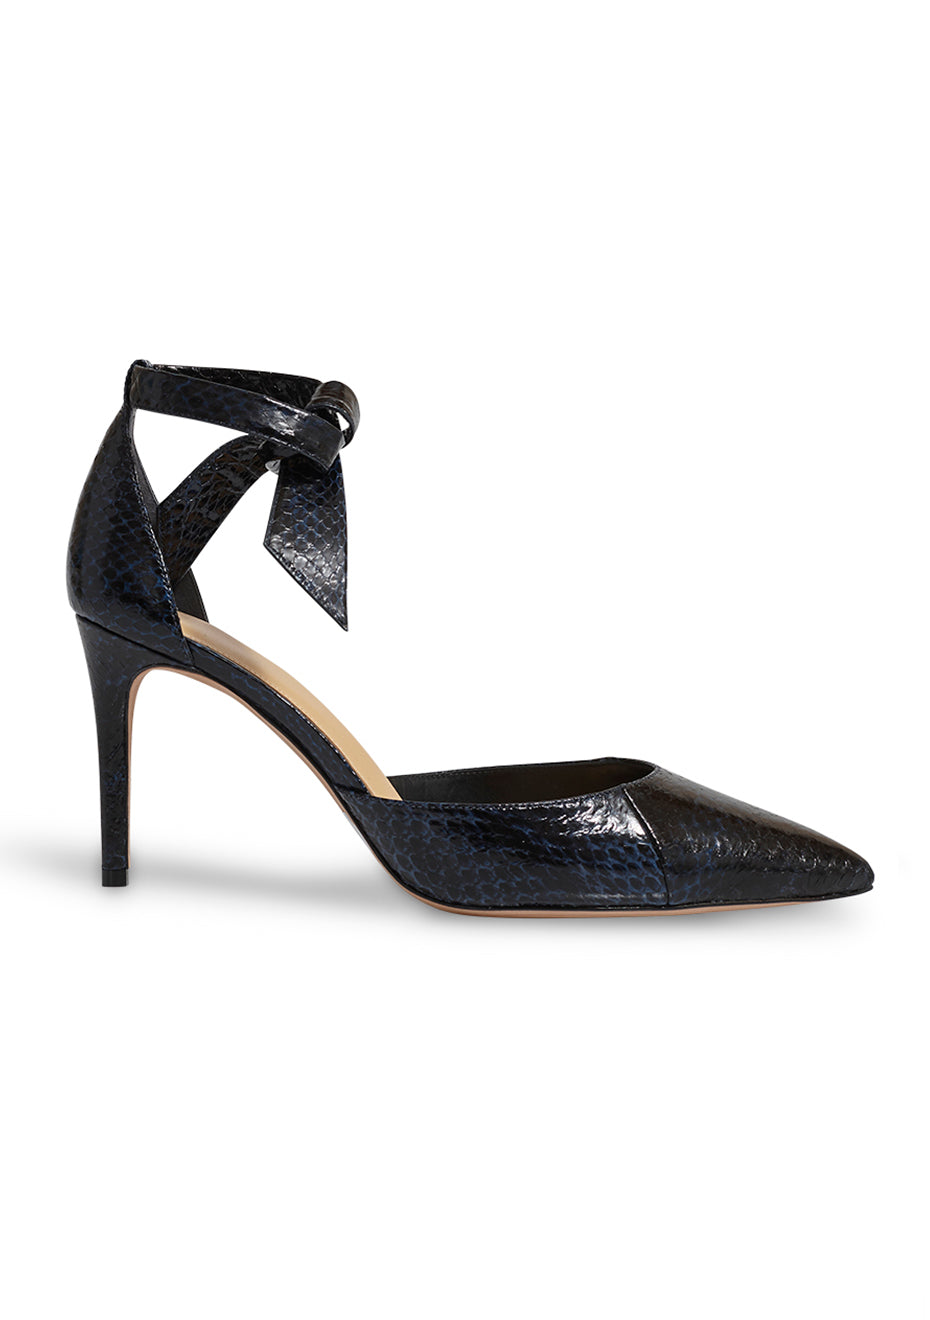 Snakeskin New Clarita Pumps